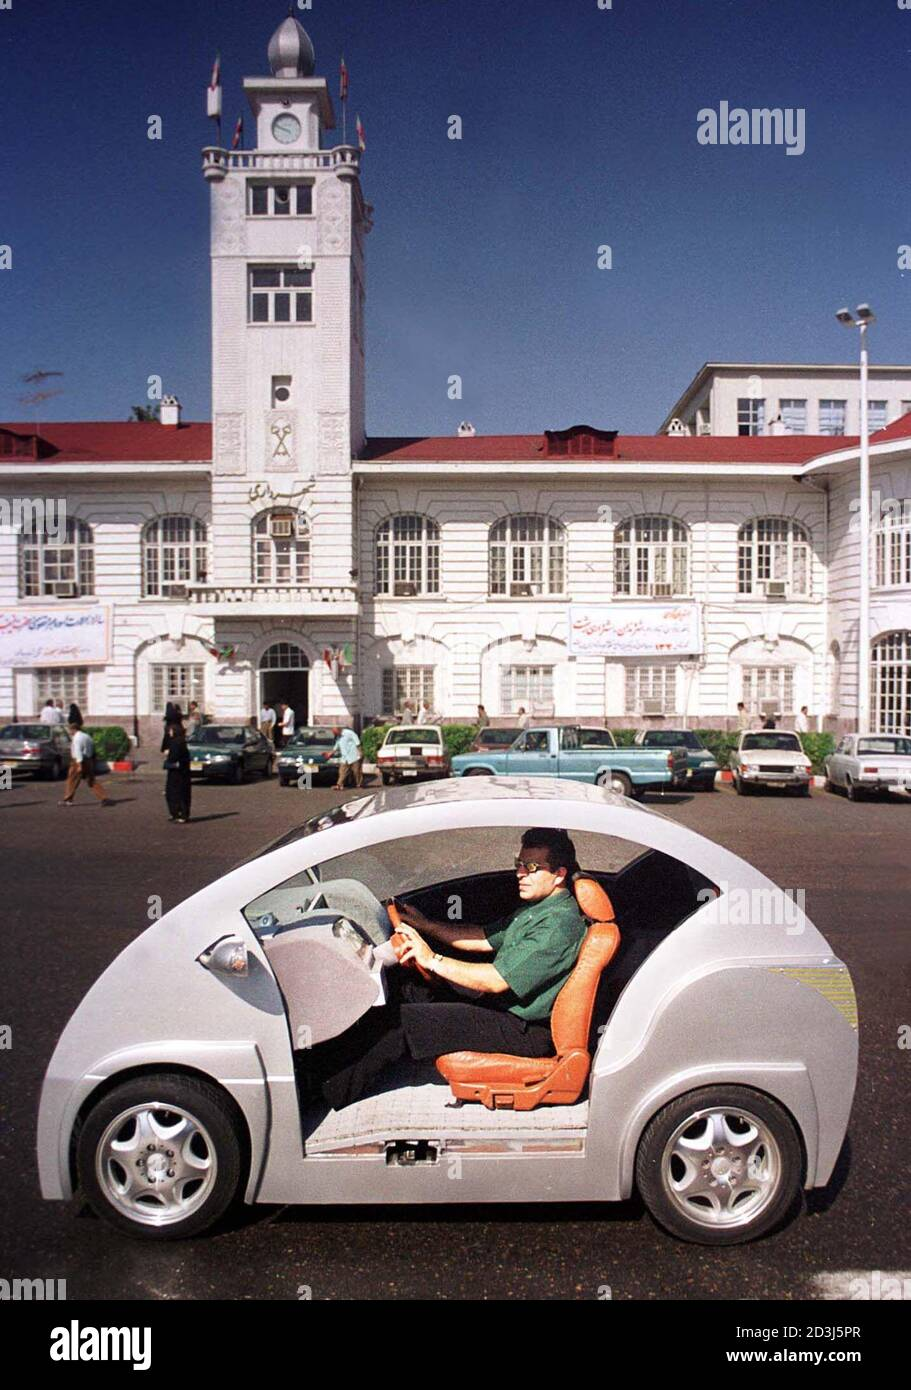 Iranian Engineer Gamshid Arian Drives The First Iranian Electric Car Aryana 792 In The Northern Iranian City Of Rasht July 18 2002 Arian Designed And Built The Four Seater Car Complete With A